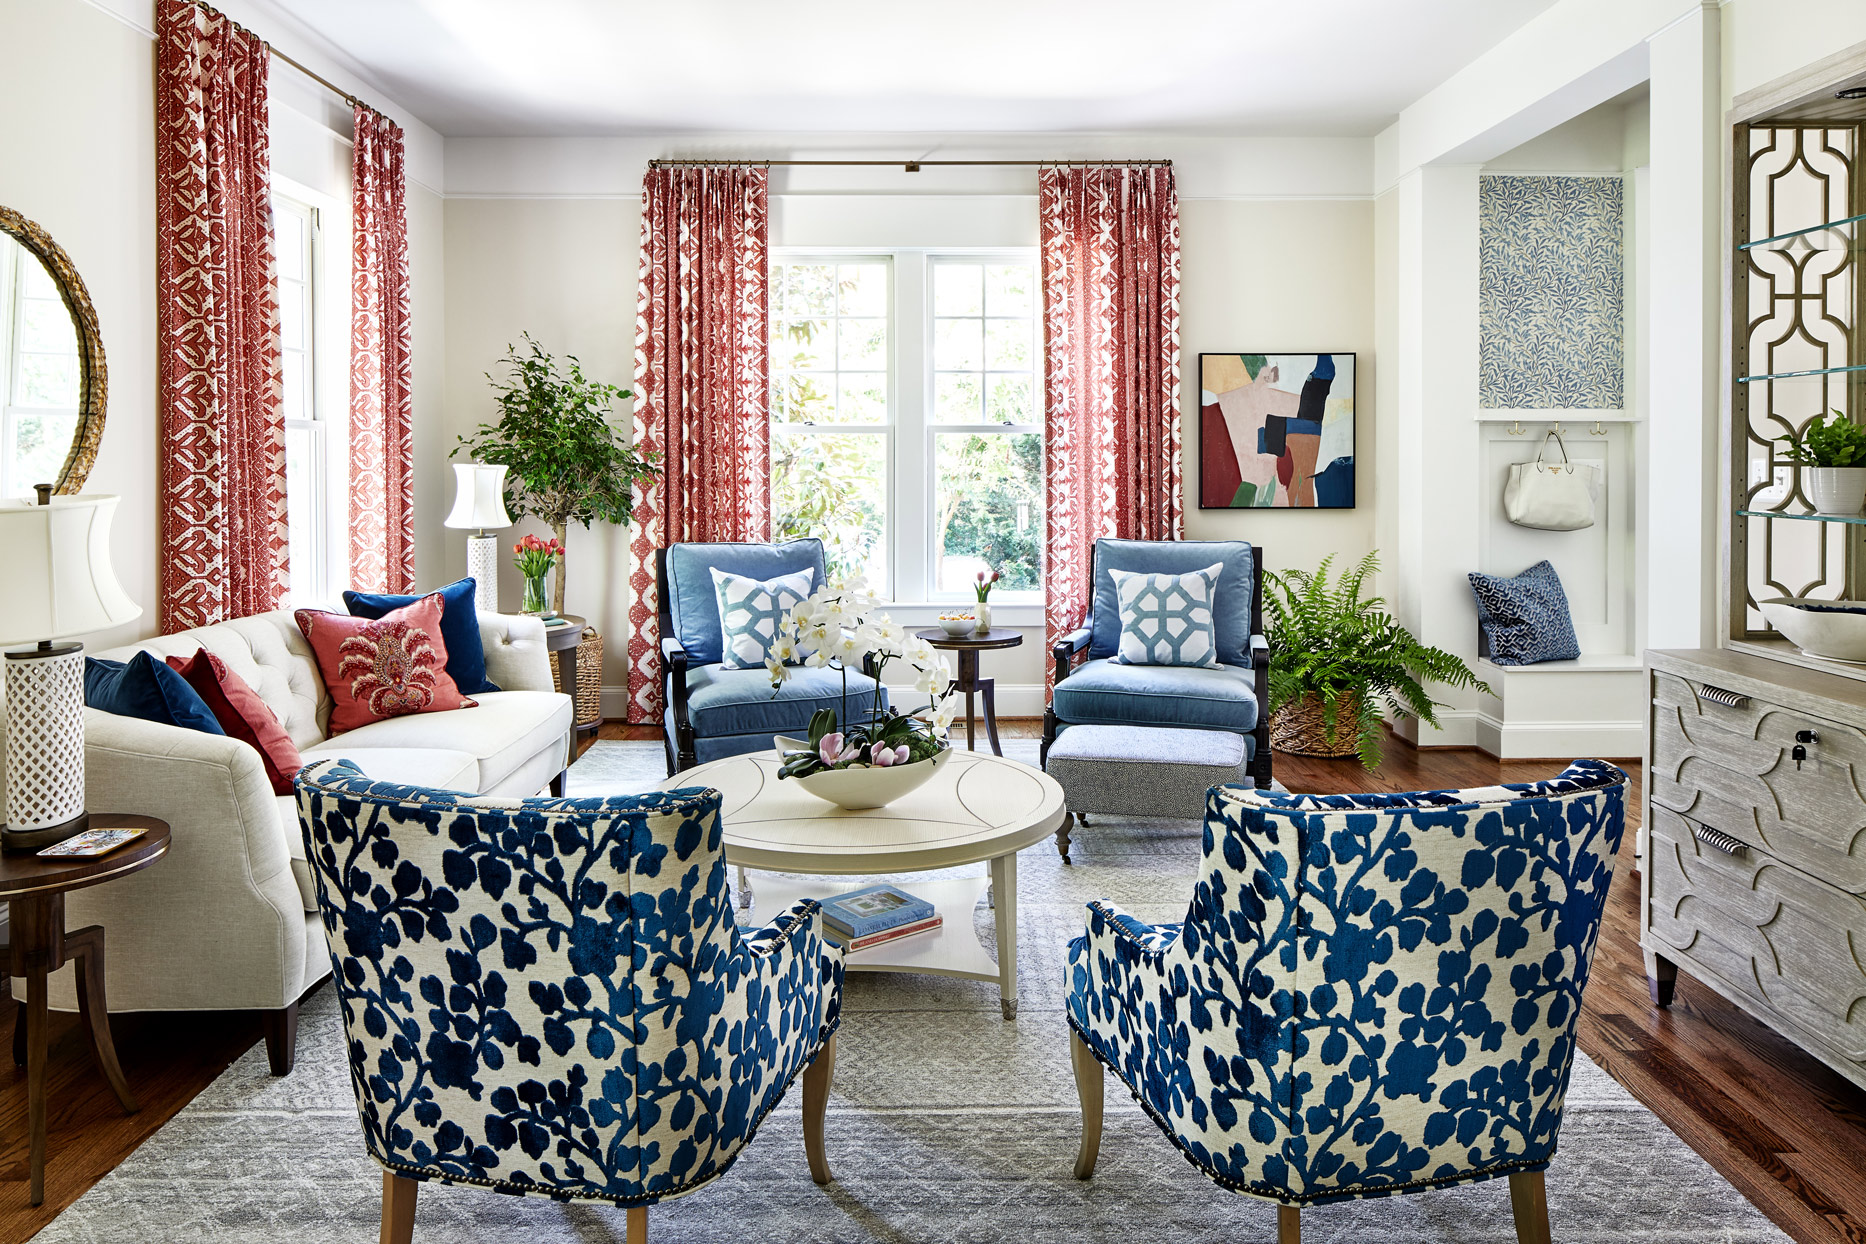 neutral-colored living room with blue chairs and red accent pieces